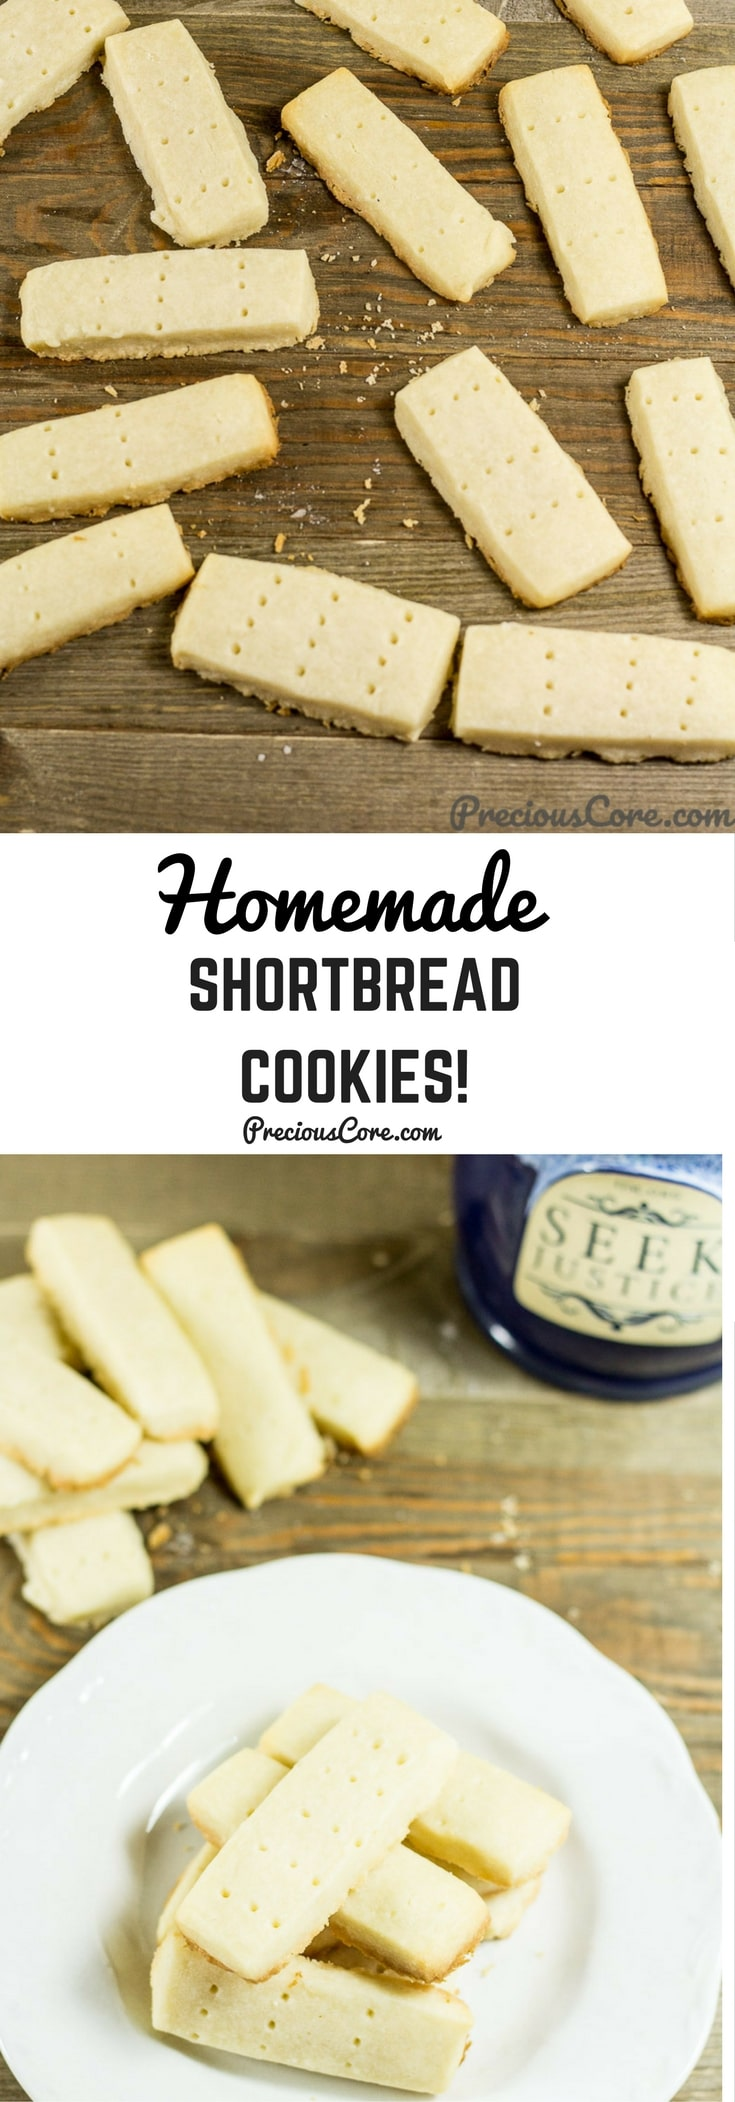 These homemade shortbread cookies are buttery and melt-in-your mouth like they should be. Only 4 ingredients needed to make shortbread cookies. Enjoy with some tea! Get the recipe on preciouscore.com. #Cookies #Shortbread #ChristmasCookies #Homemade